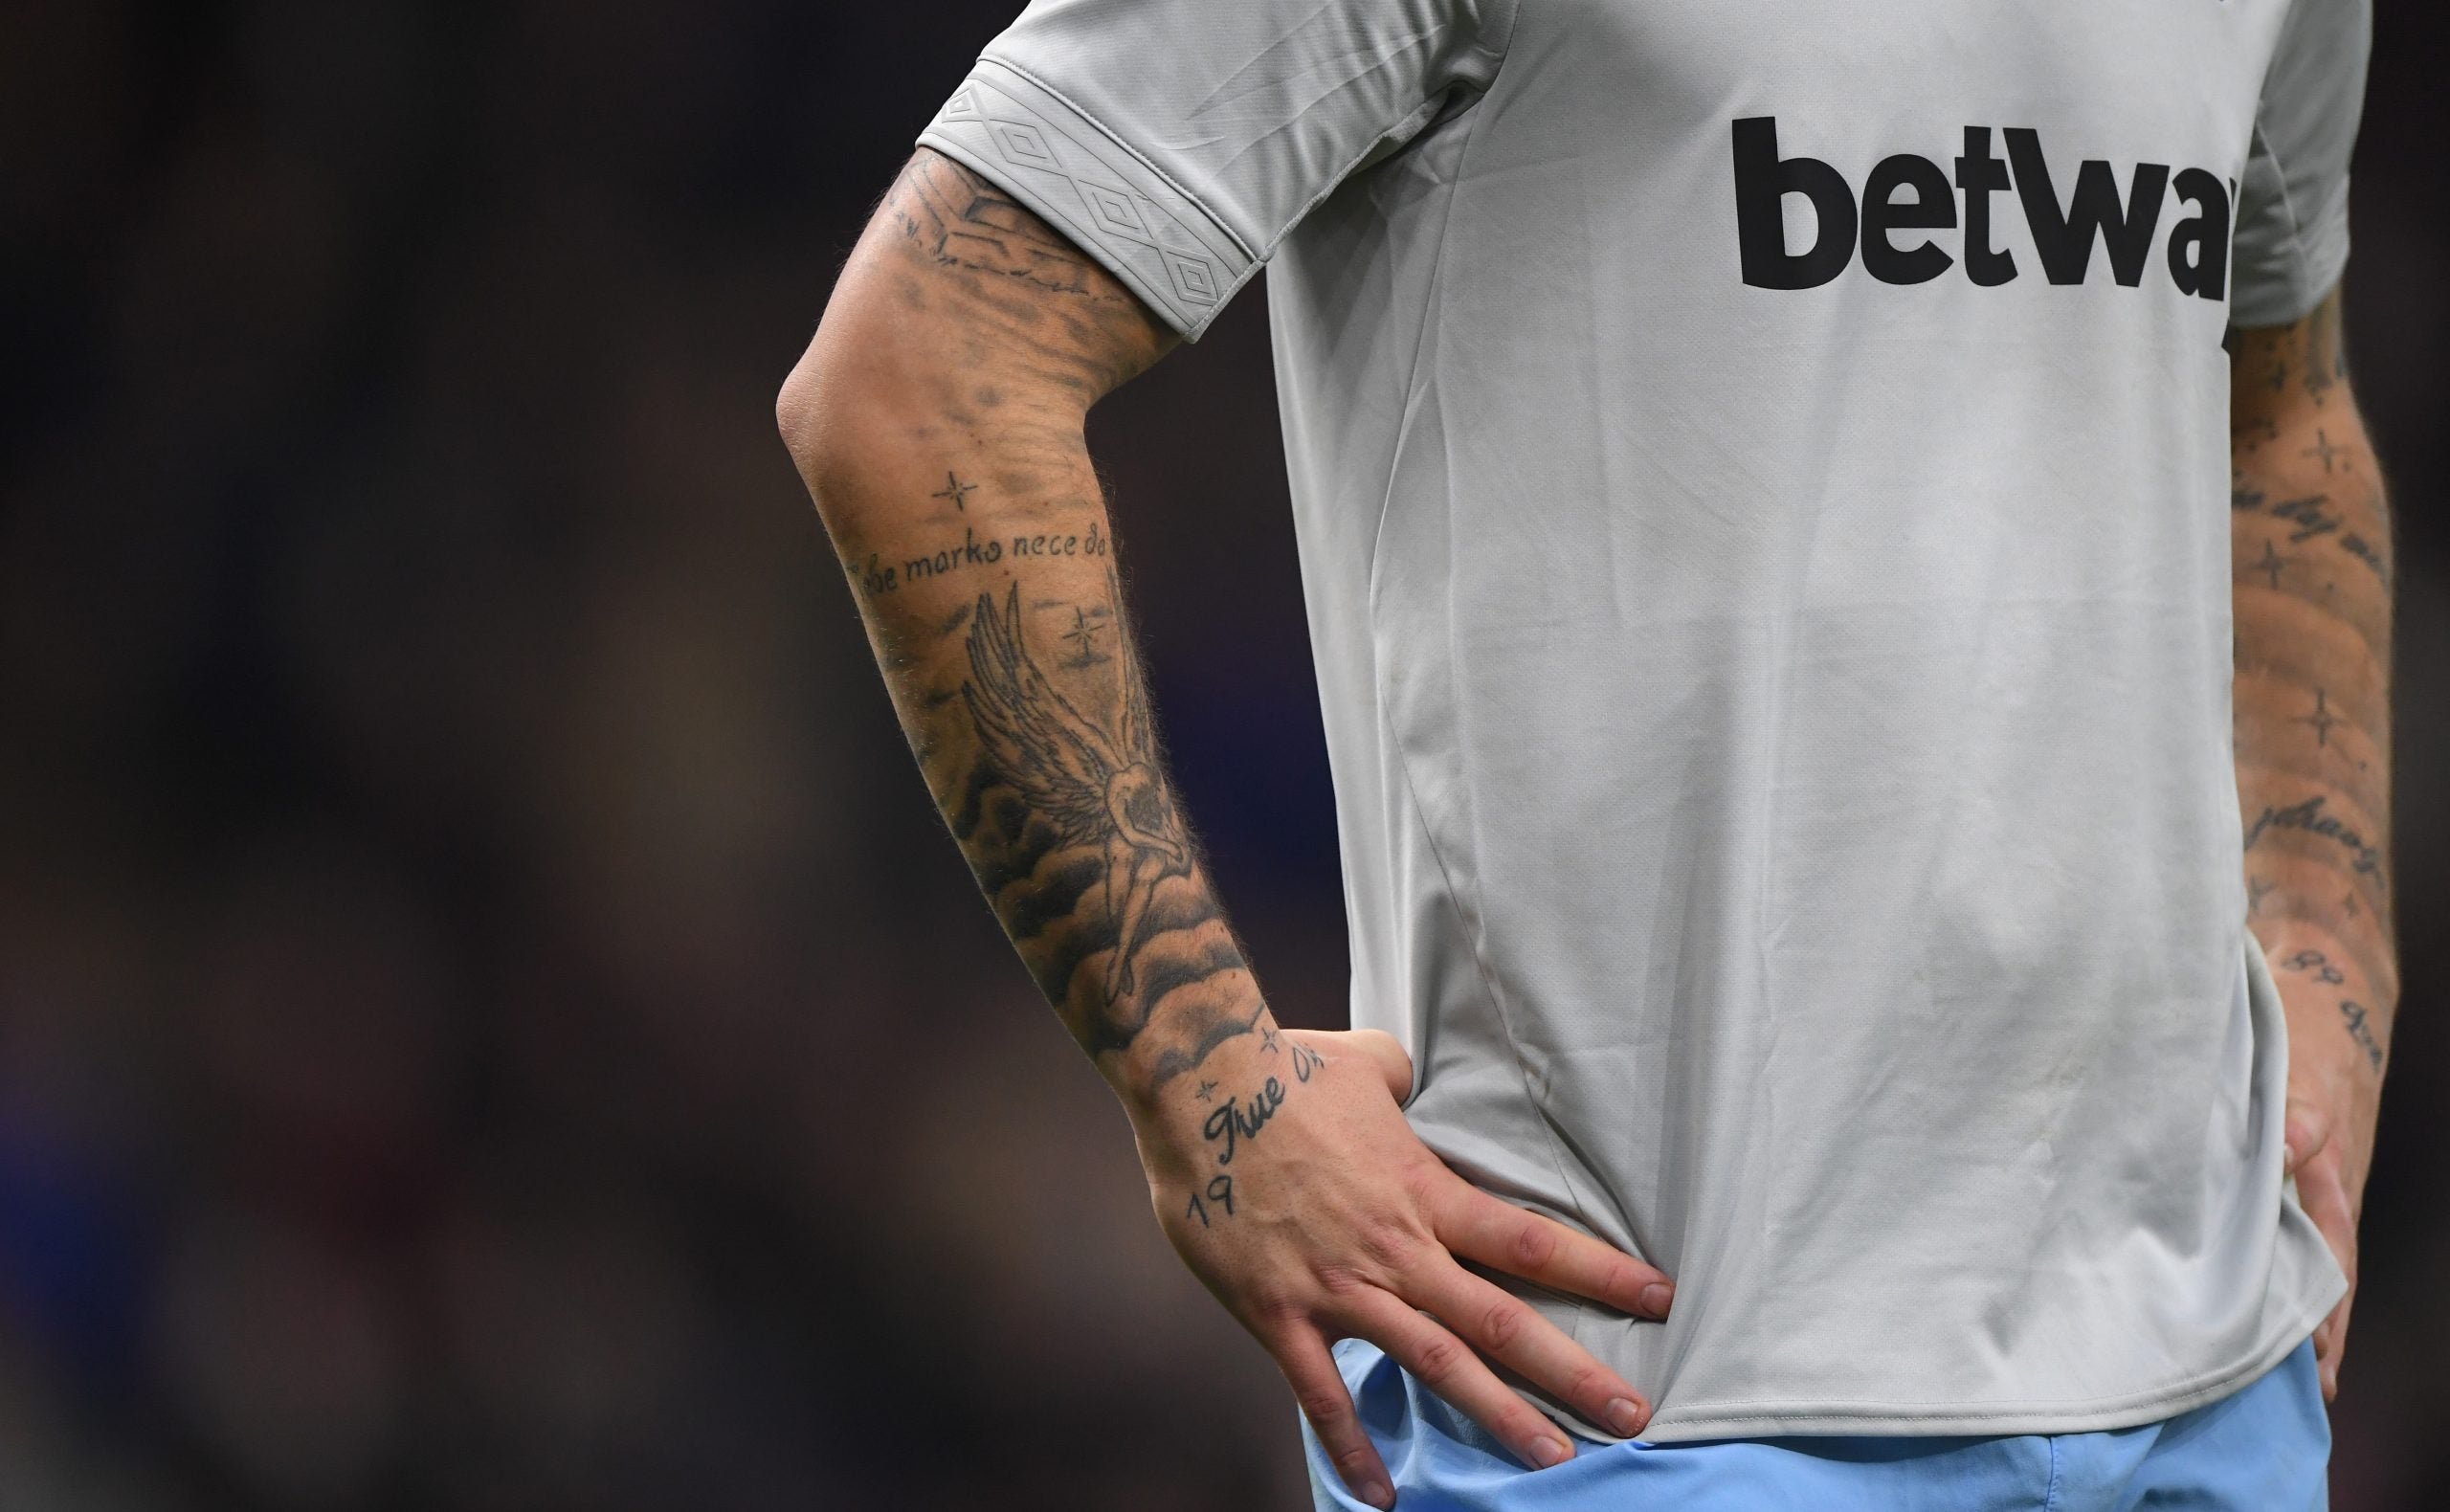 With the Prem feeling the pinch, it's time to monetise everything – even players' tattoos